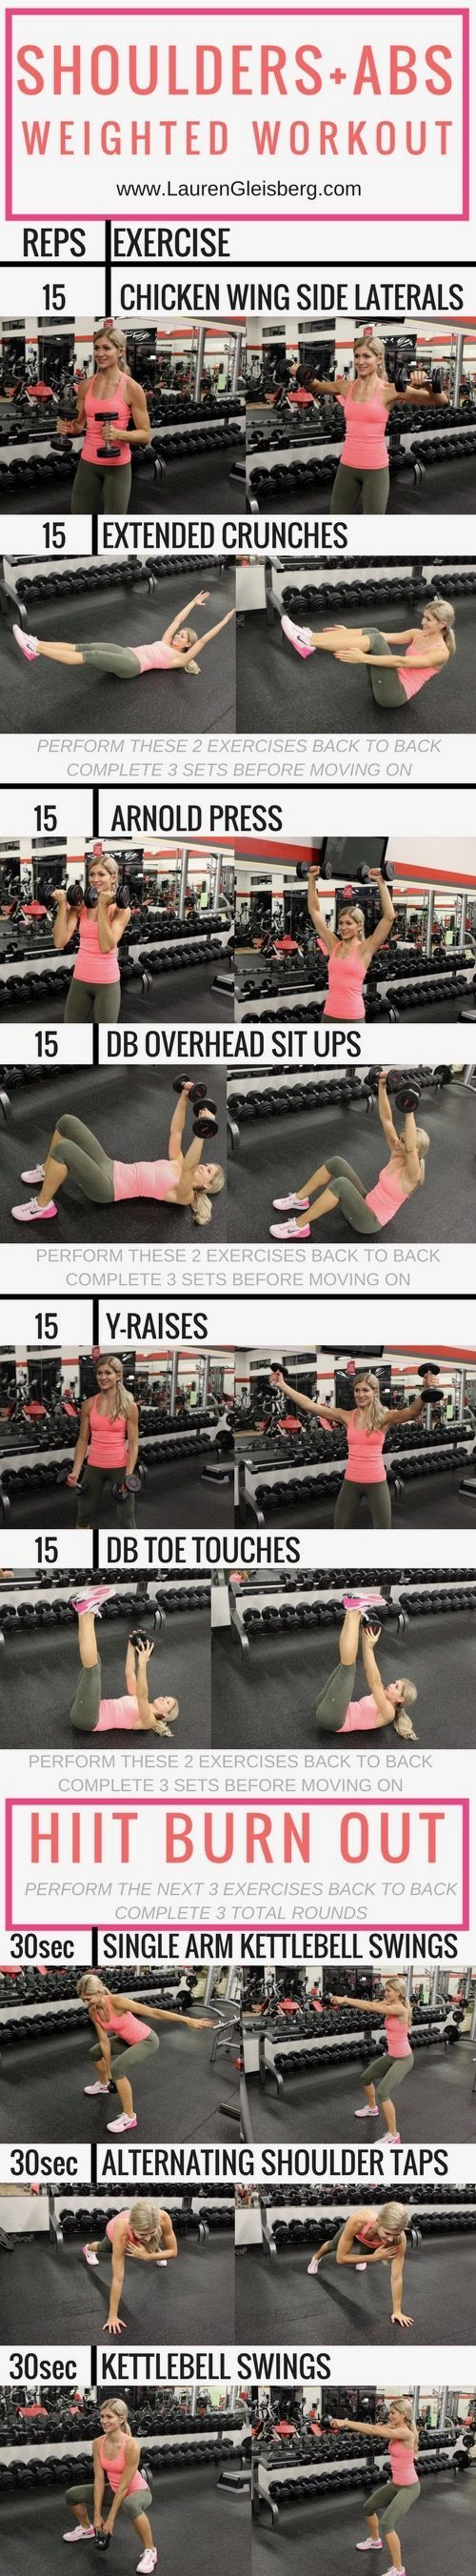 Wk4-shoulders-abs-upper-body-workout.jpg 500 × 2 704 pixlar